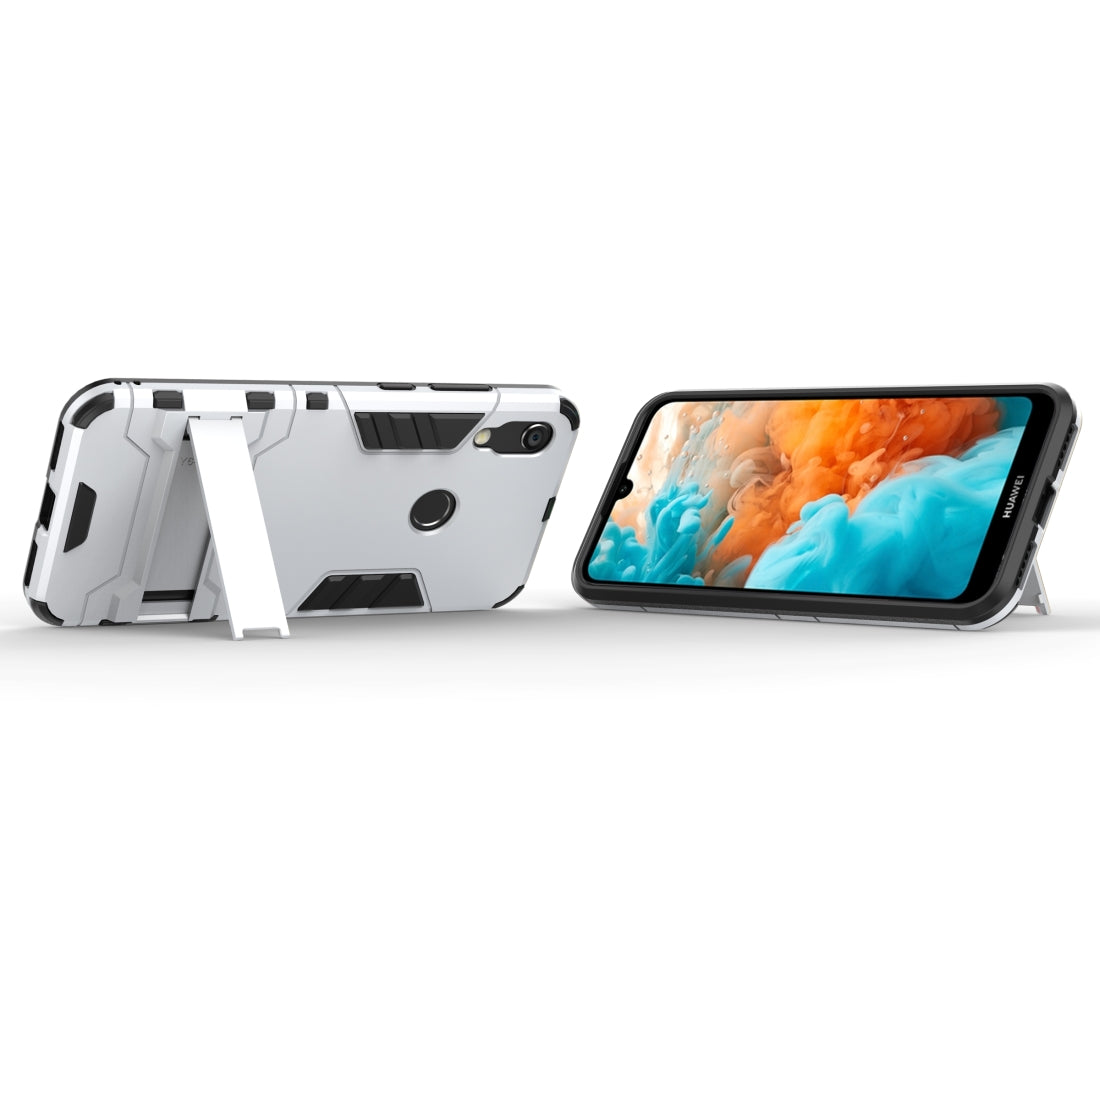 Shockproof PC + TPU Case for Huawei Y6 (2019), with Holder (Silver)